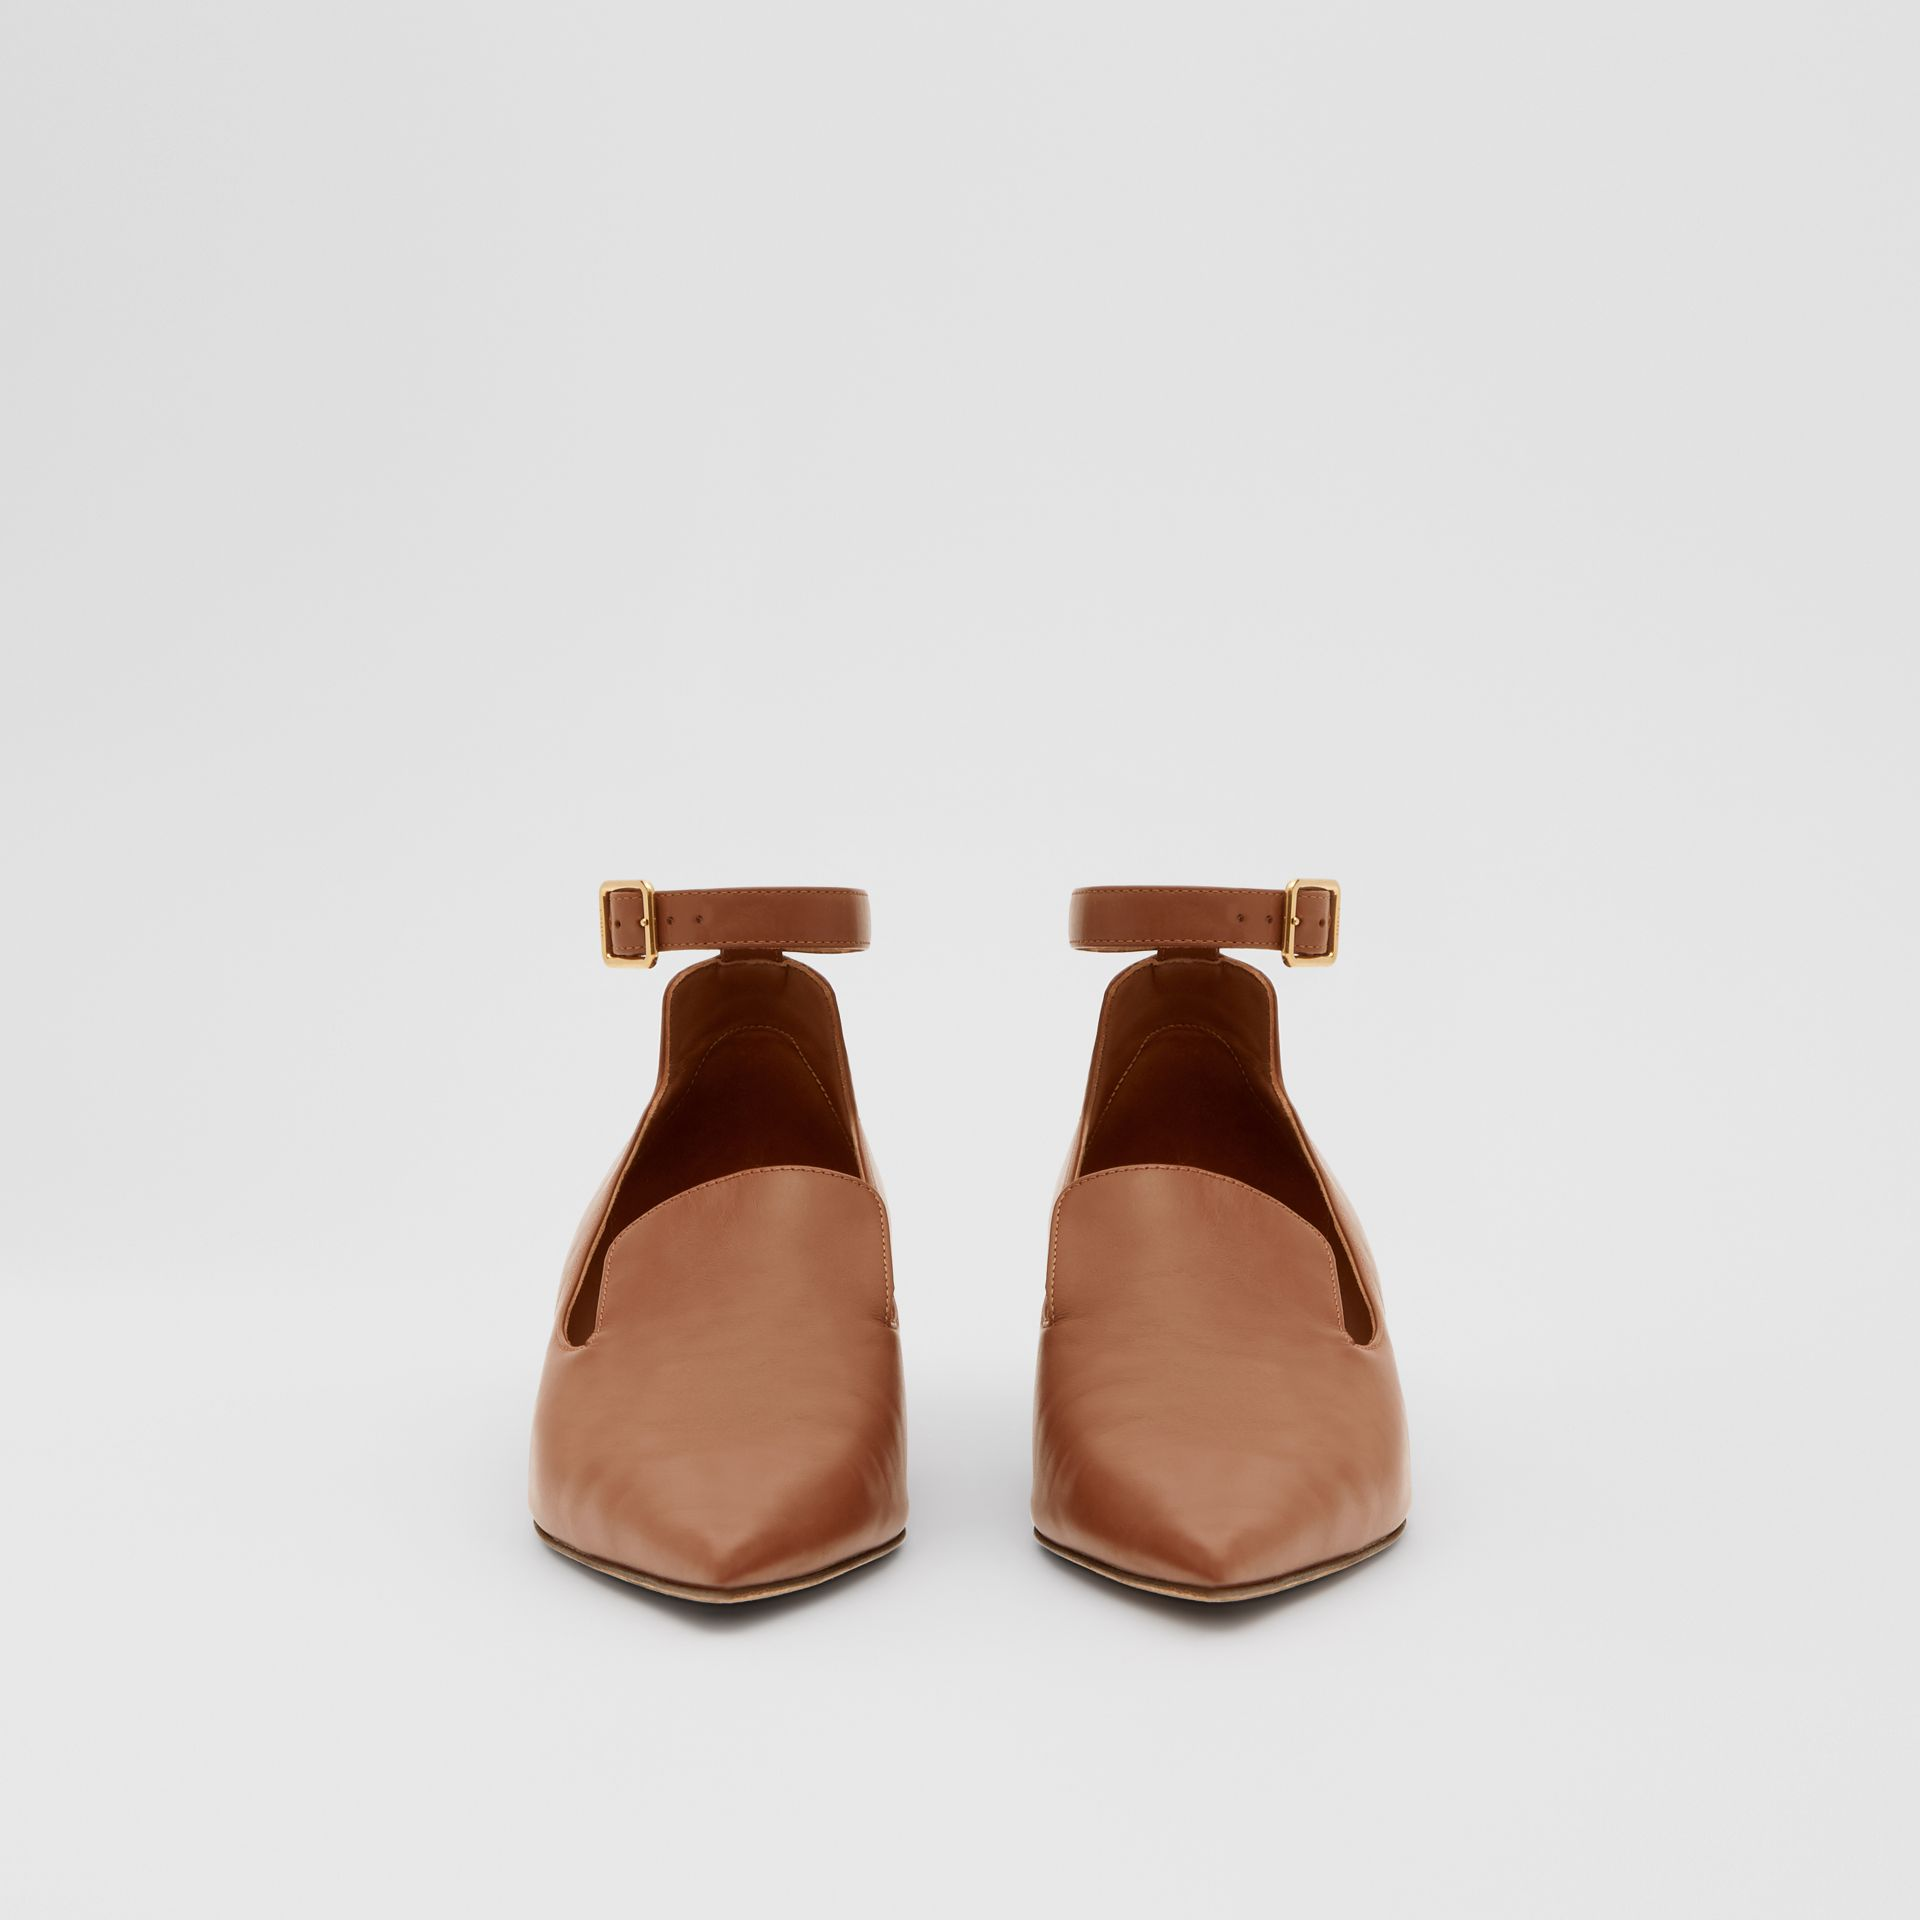 Leather Point-toe Kitten-heel Pumps in Soft Camel - Women | Burberry - gallery image 2